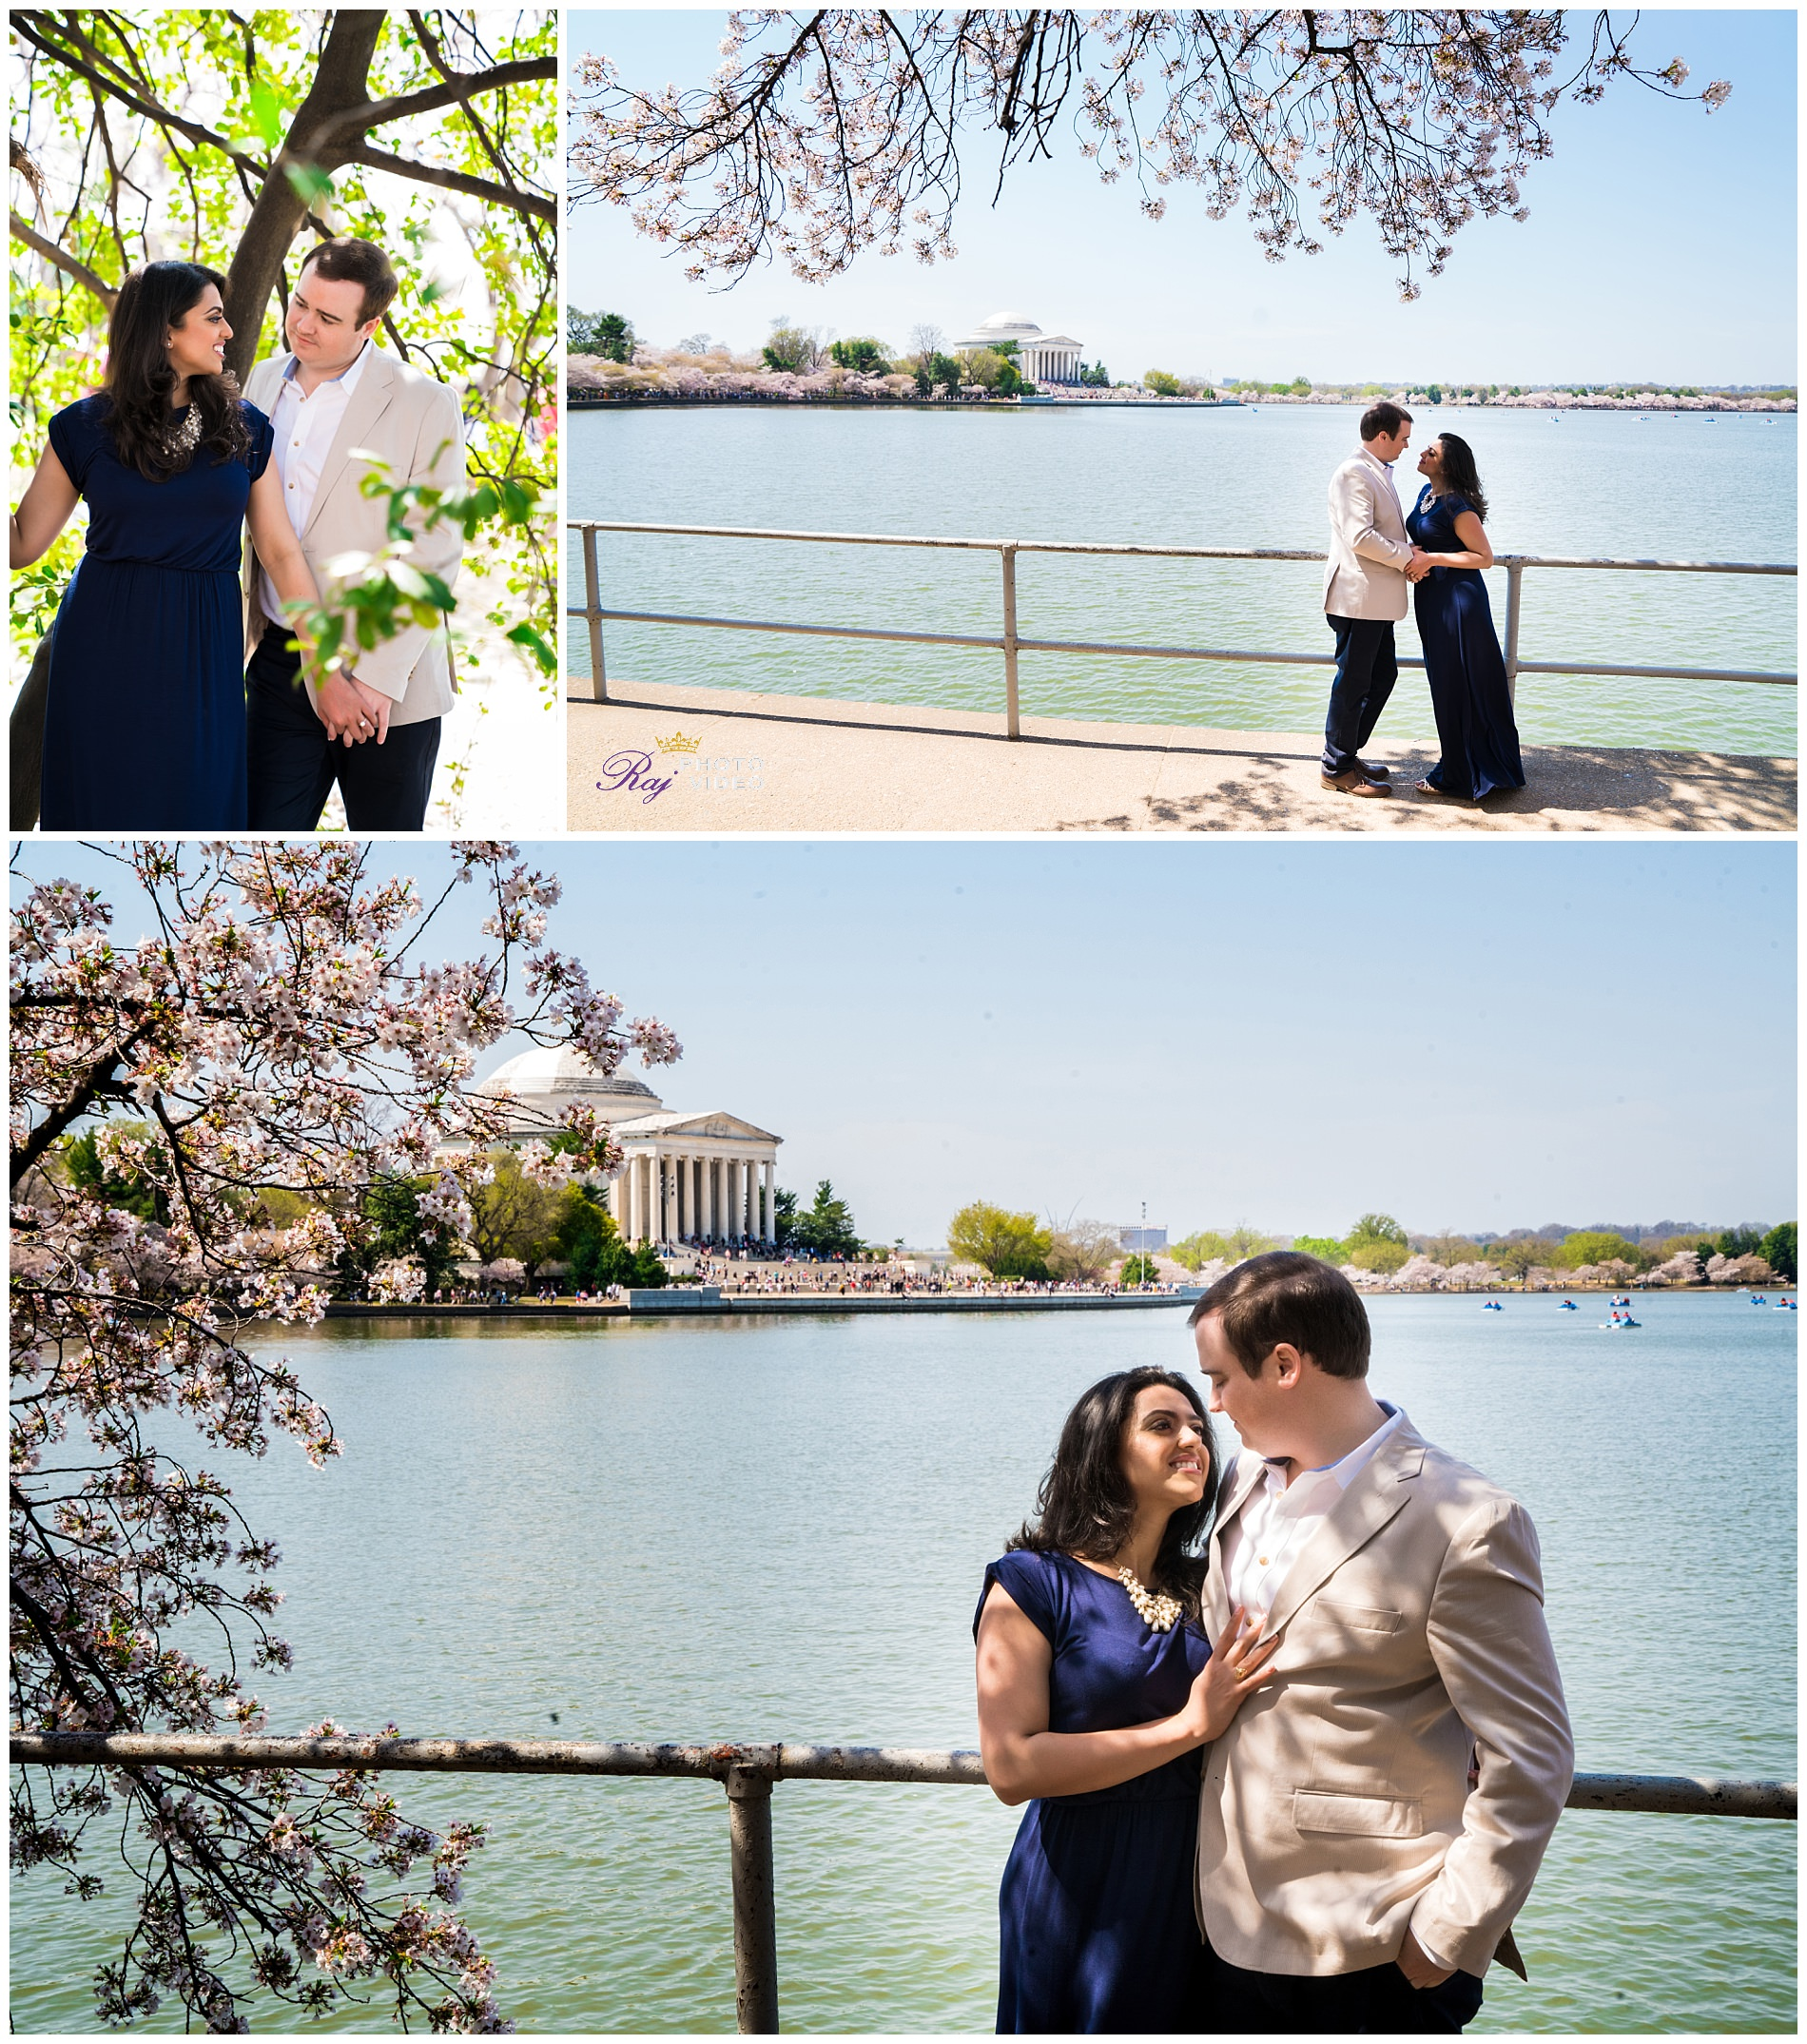 National-Cherry-Blossom-Festival-Washington-DC-Engagement-Shoot-Aditi-Peter-4.jpg